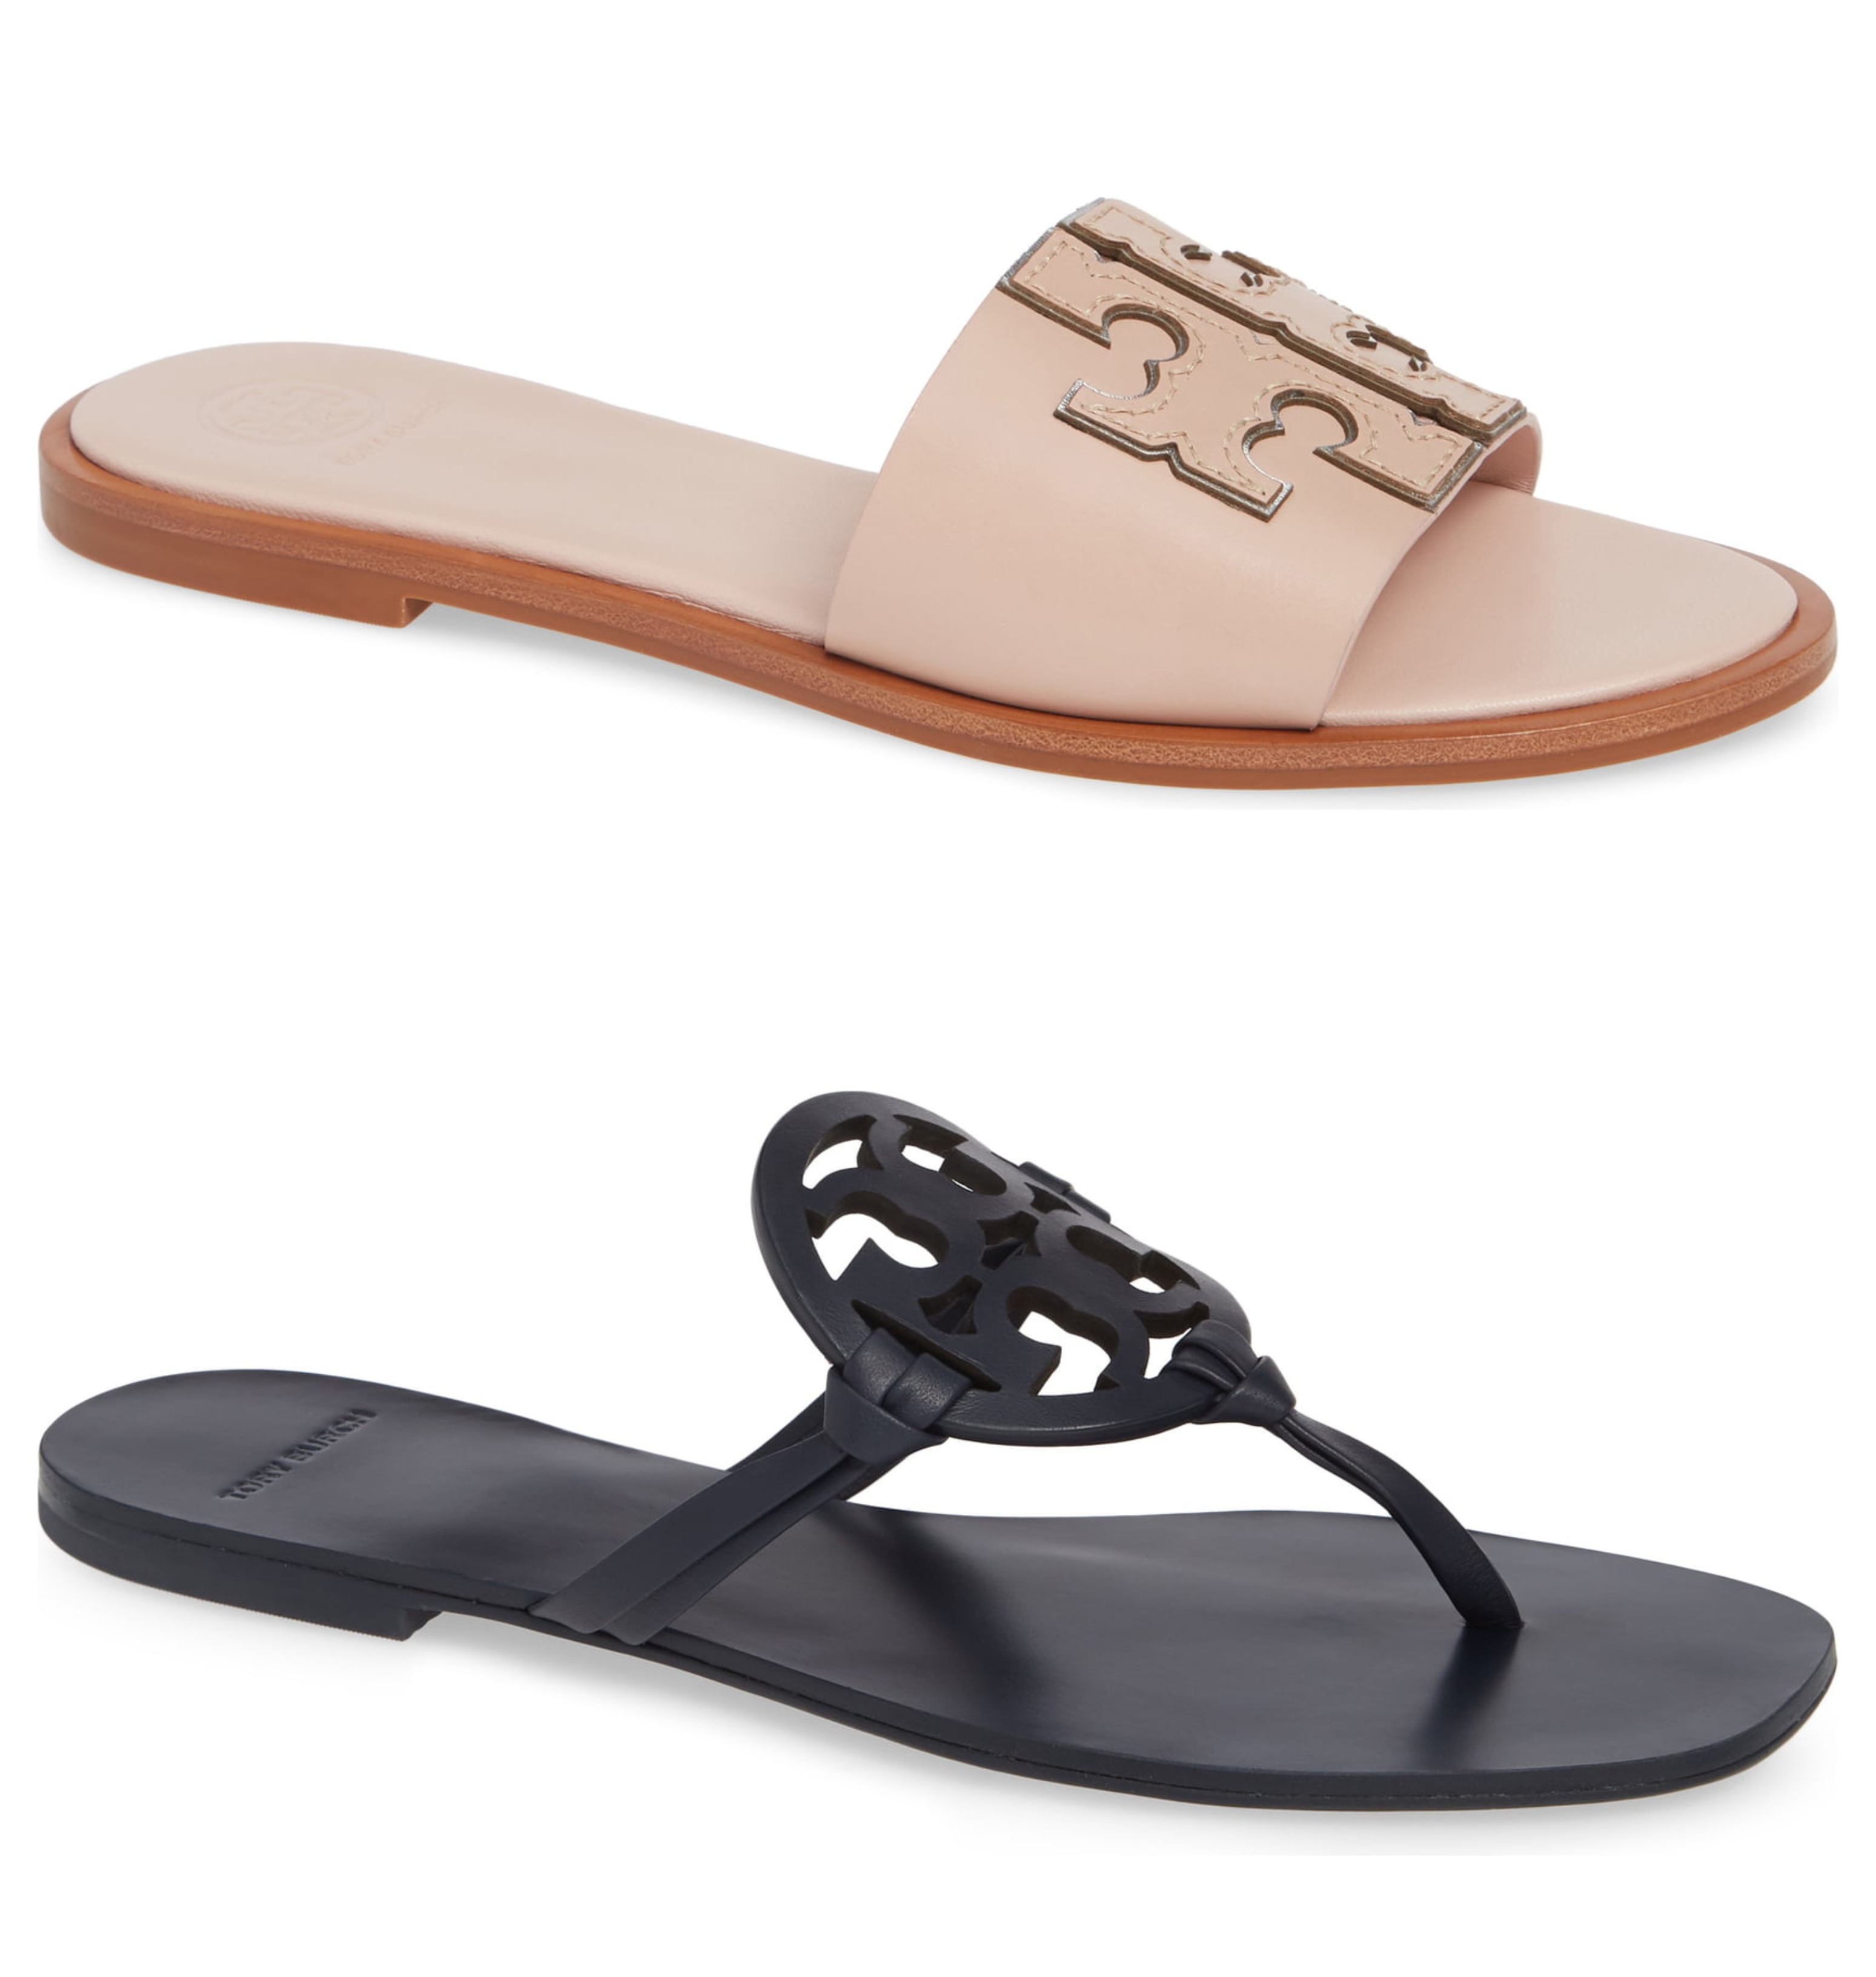 8108c160613 Nordstrom  Save 20% Off Tory Burch Sandals + Free Shipping and Returns!